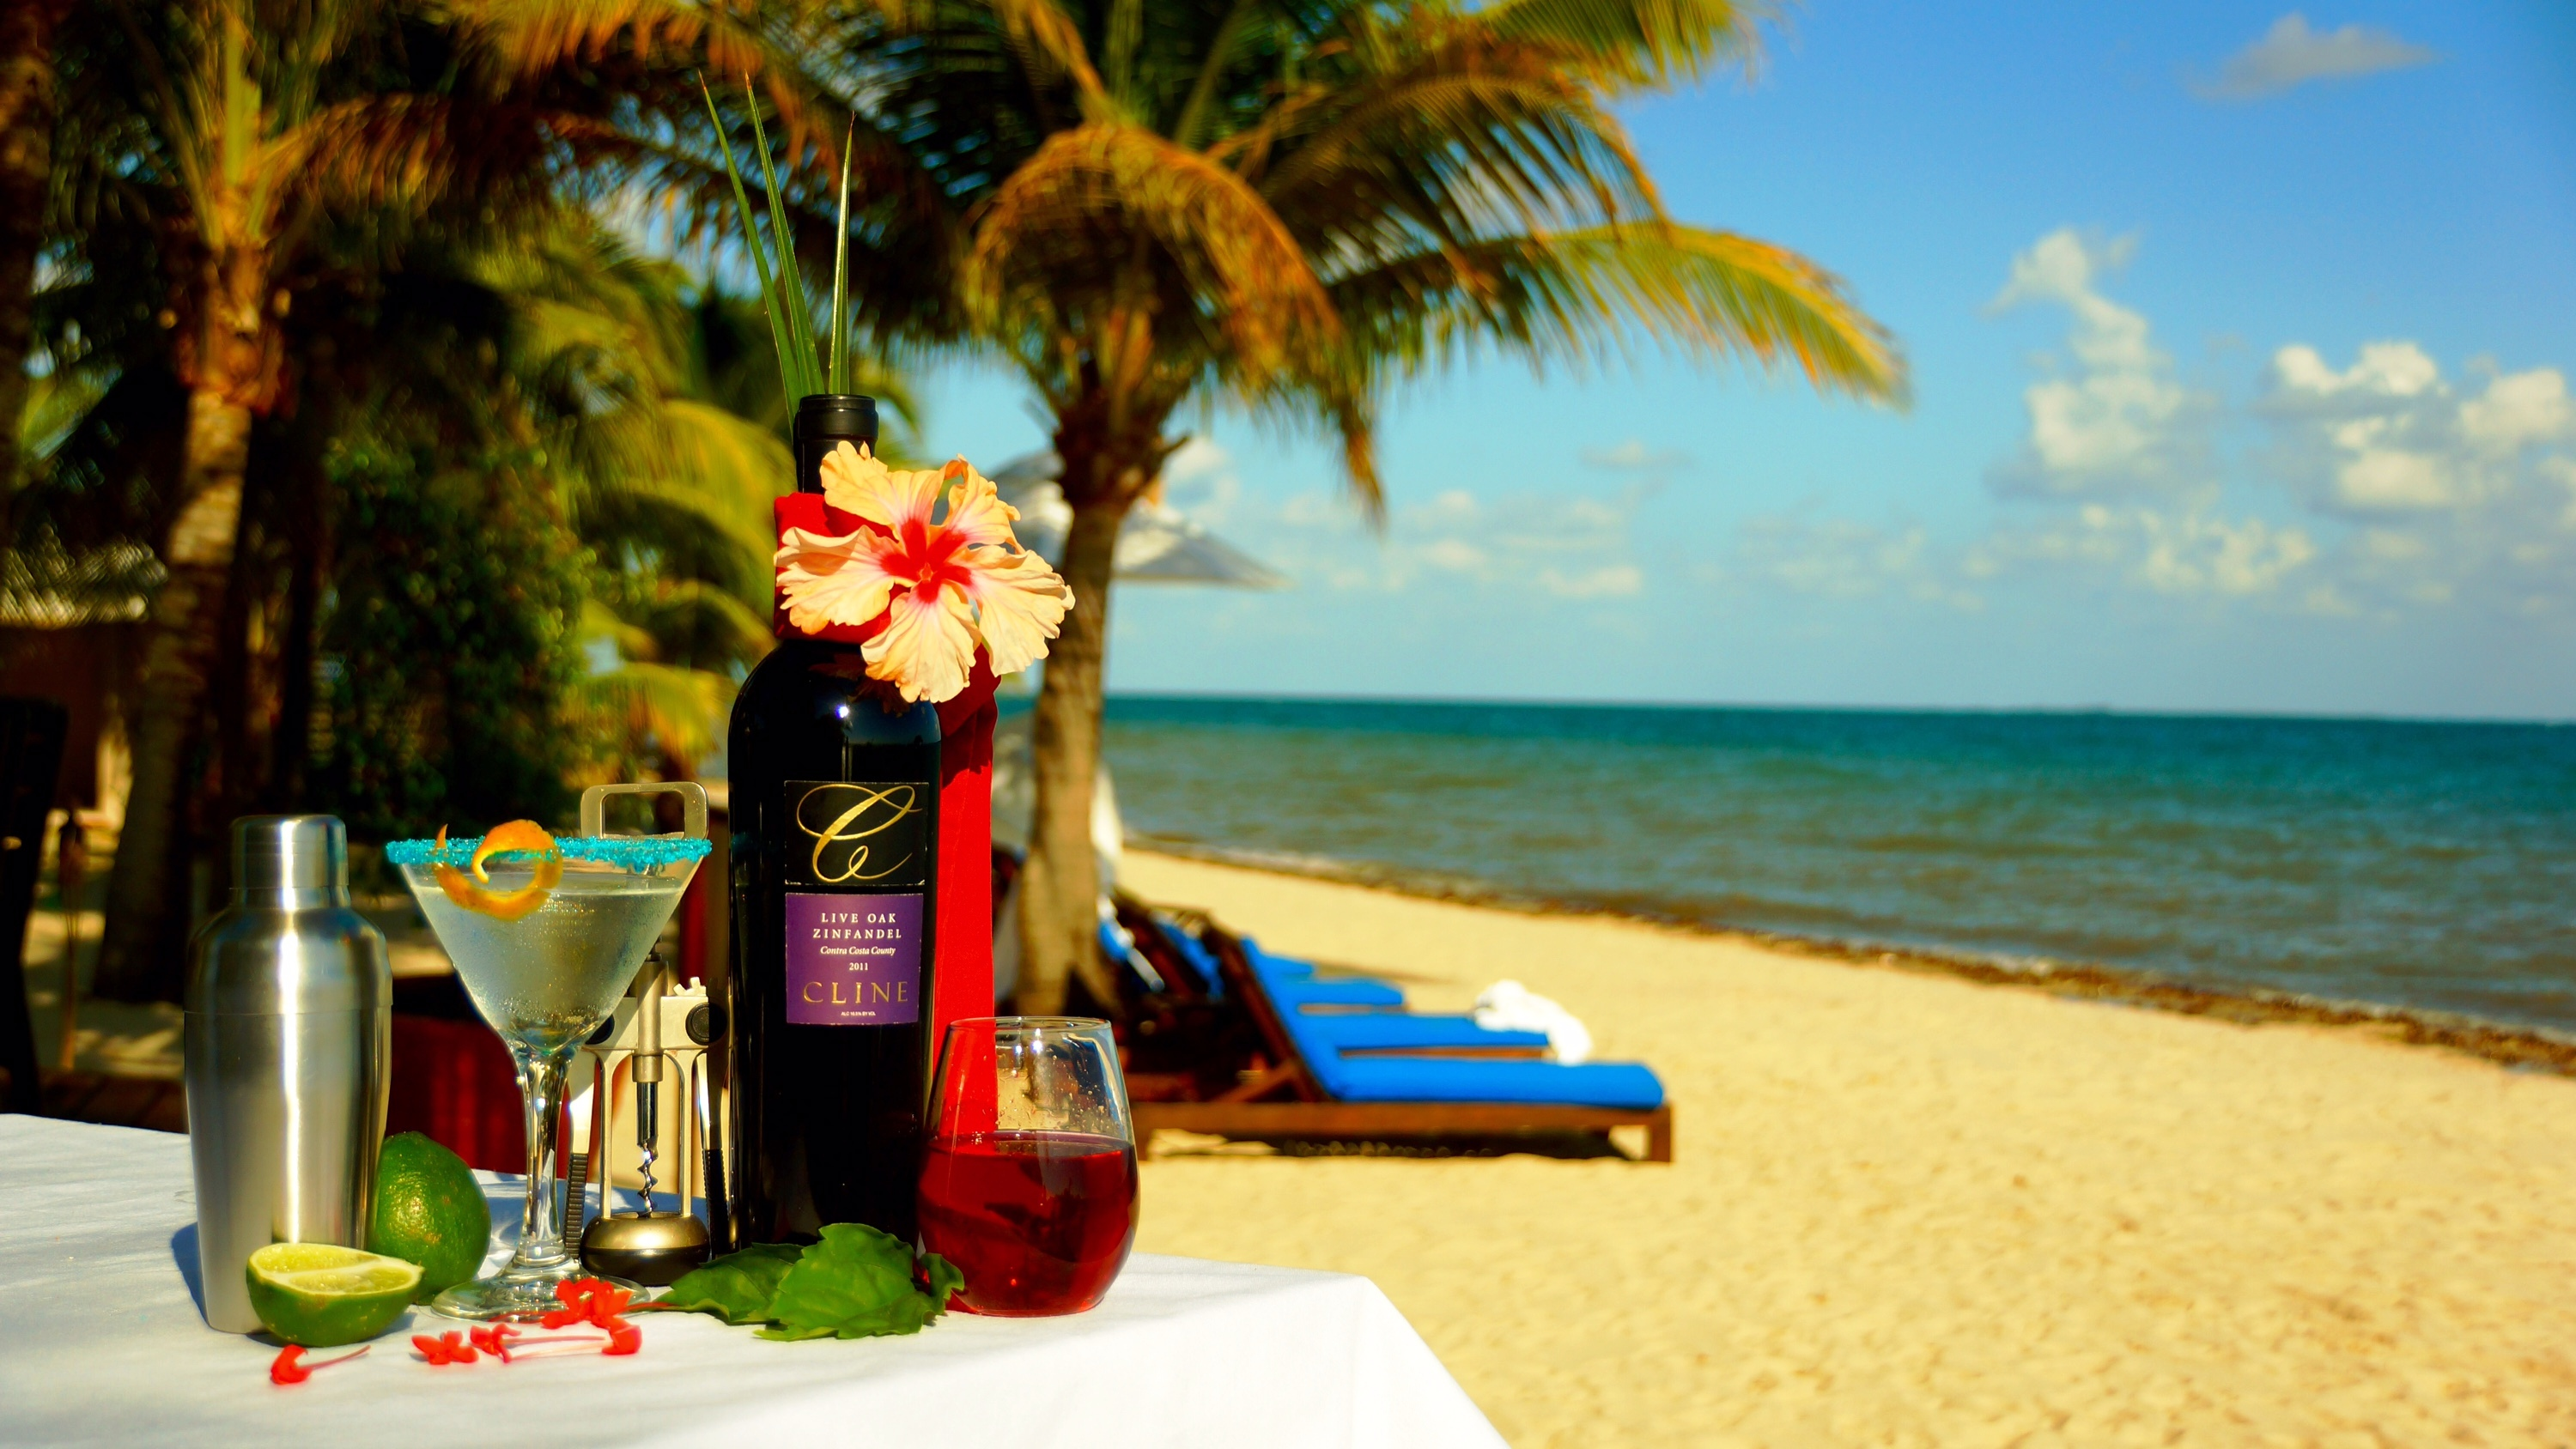 The Best Belize All Inclusive Vacation Packages To Book